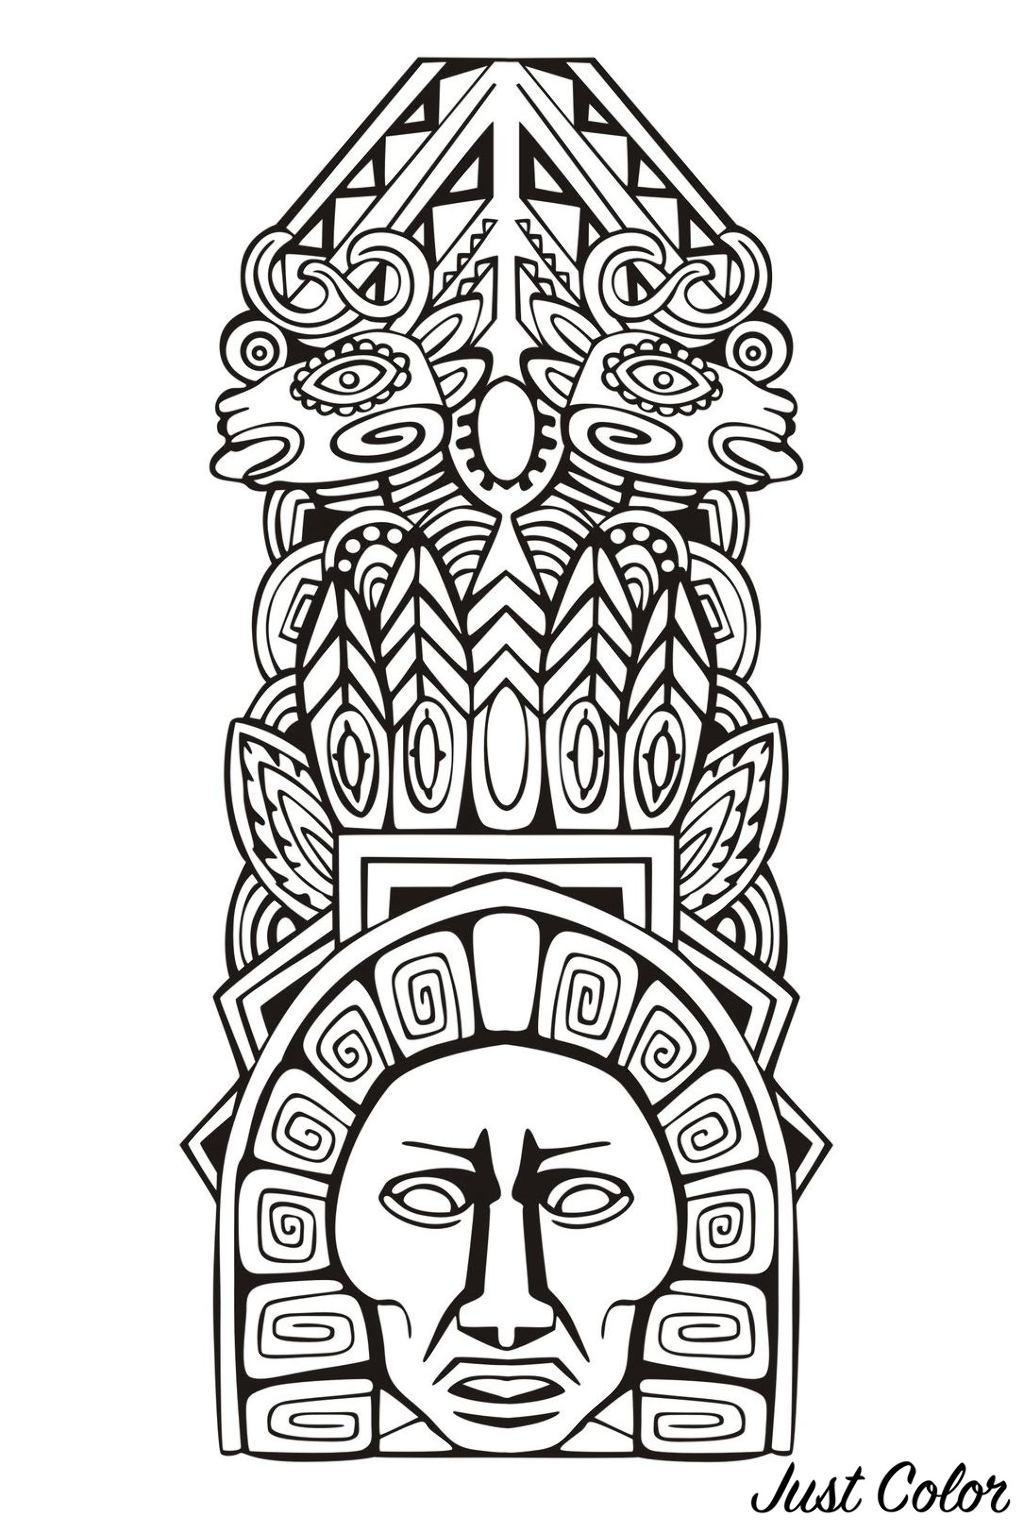 Totem inspired by Aztecs, Mayans and Incas - 5